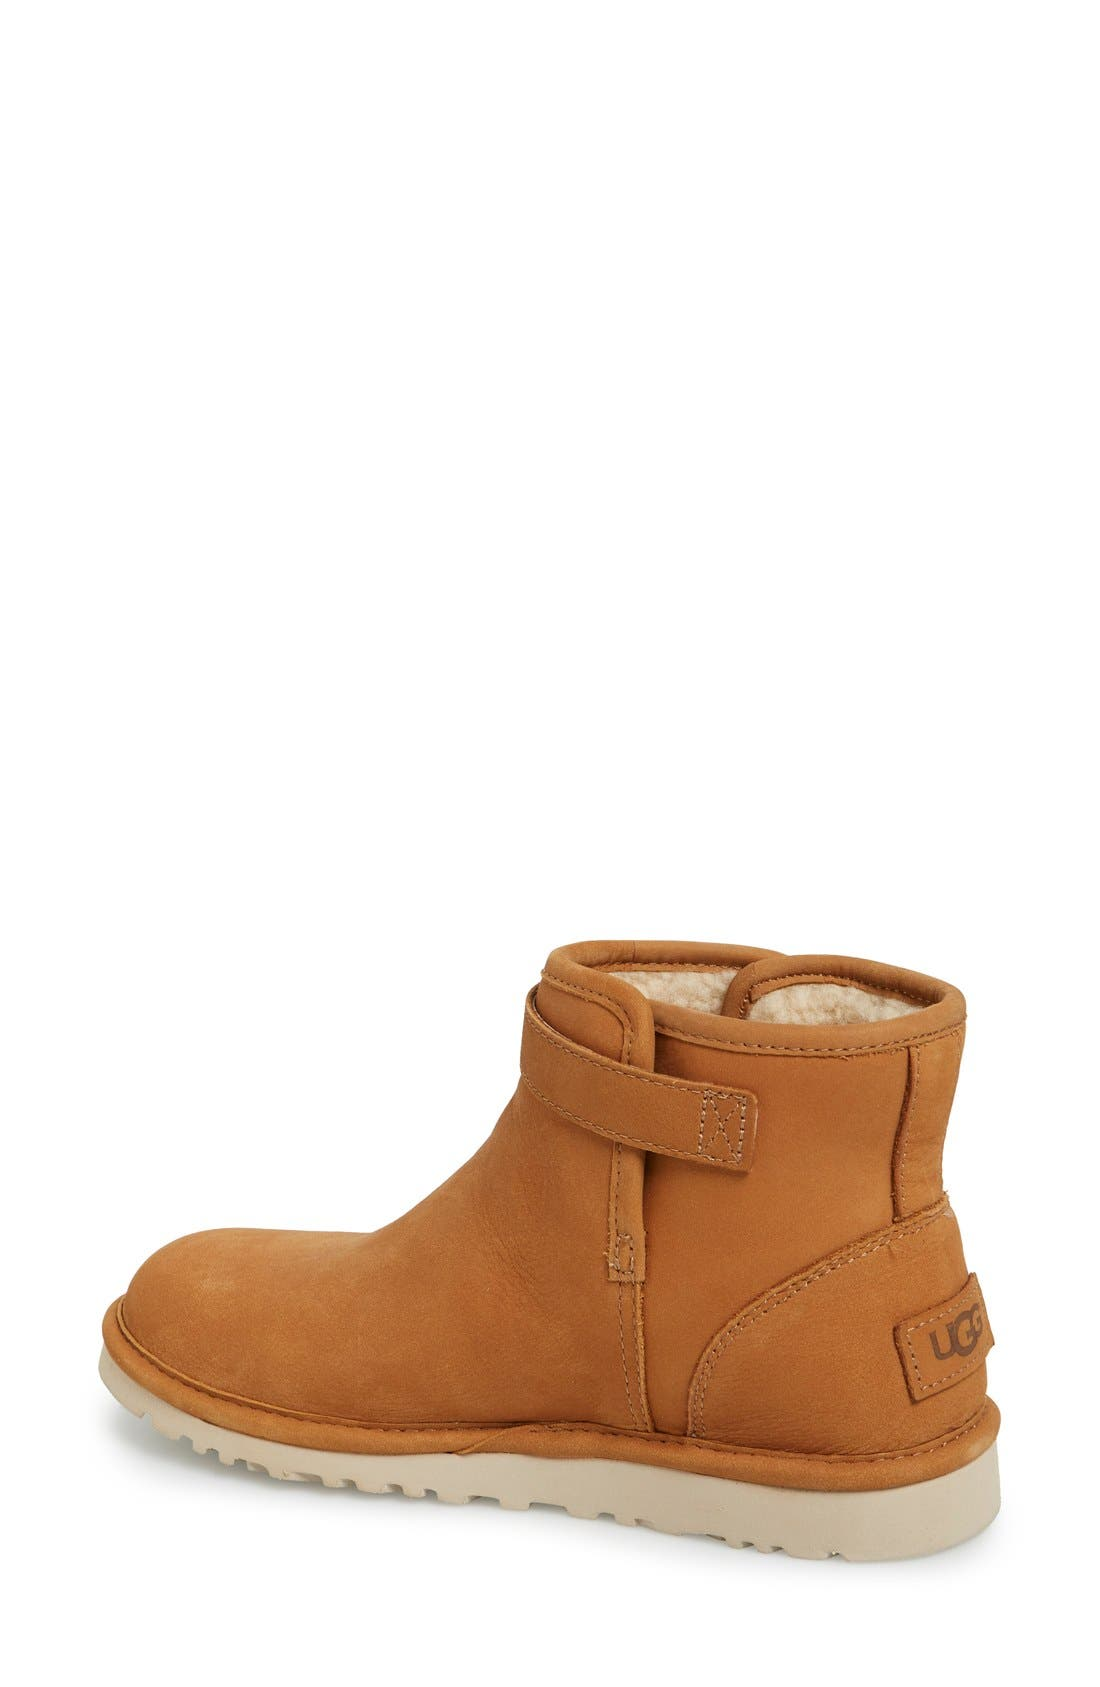 Alternate Image 2  - UGG® 'Rella' Leather Ankle Boot (Women)